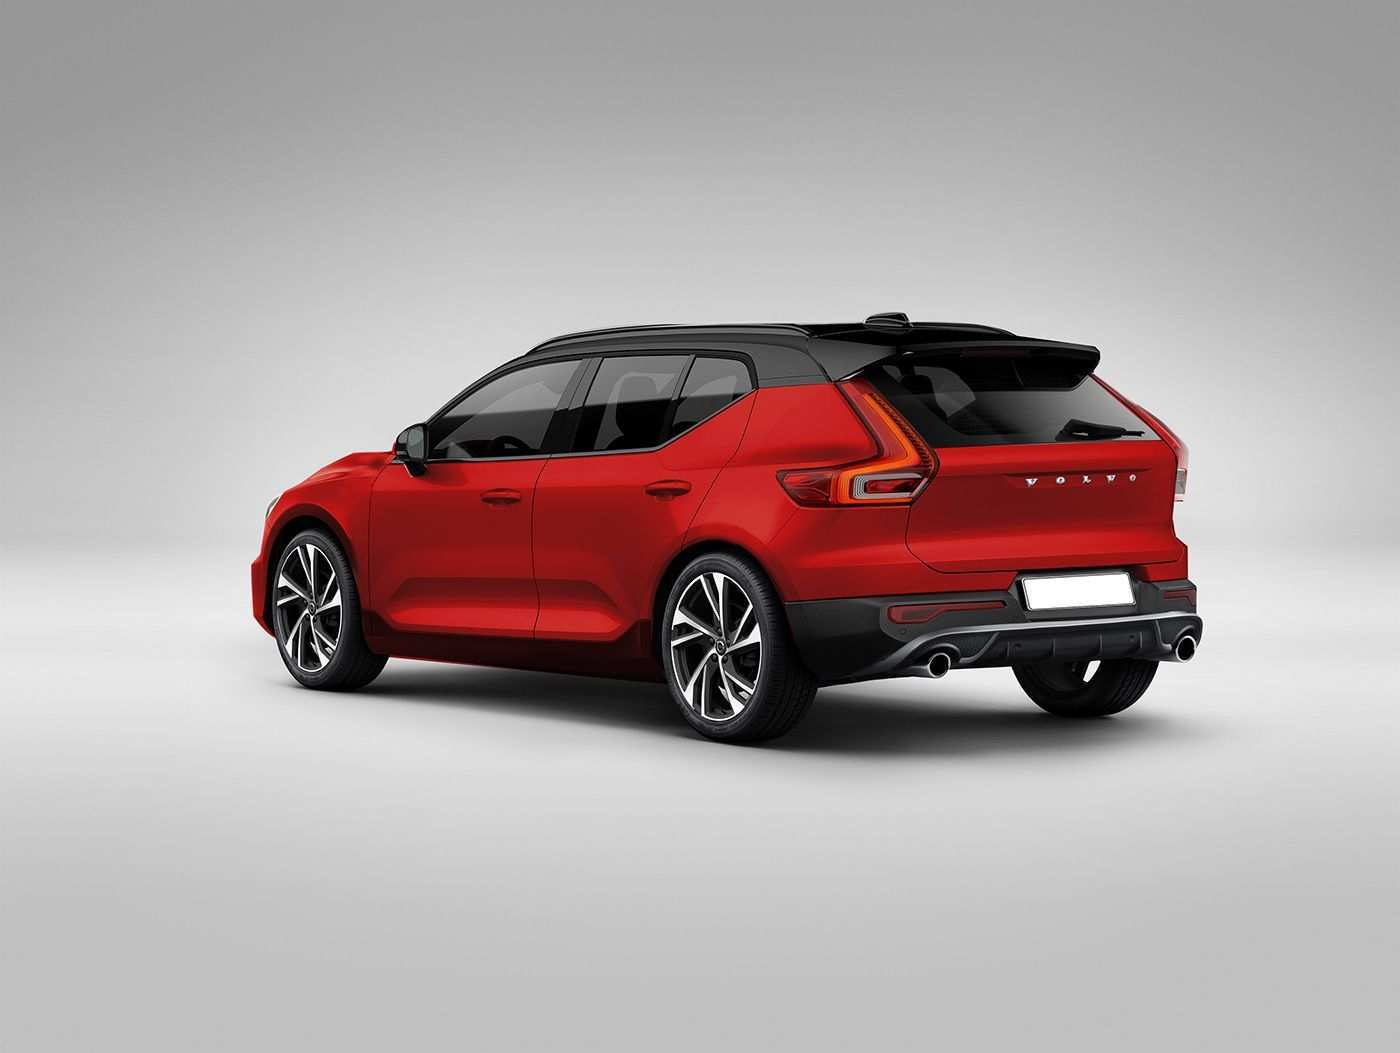 23 All New Volvo Hatchback 2020 Pricing for Volvo Hatchback 2020